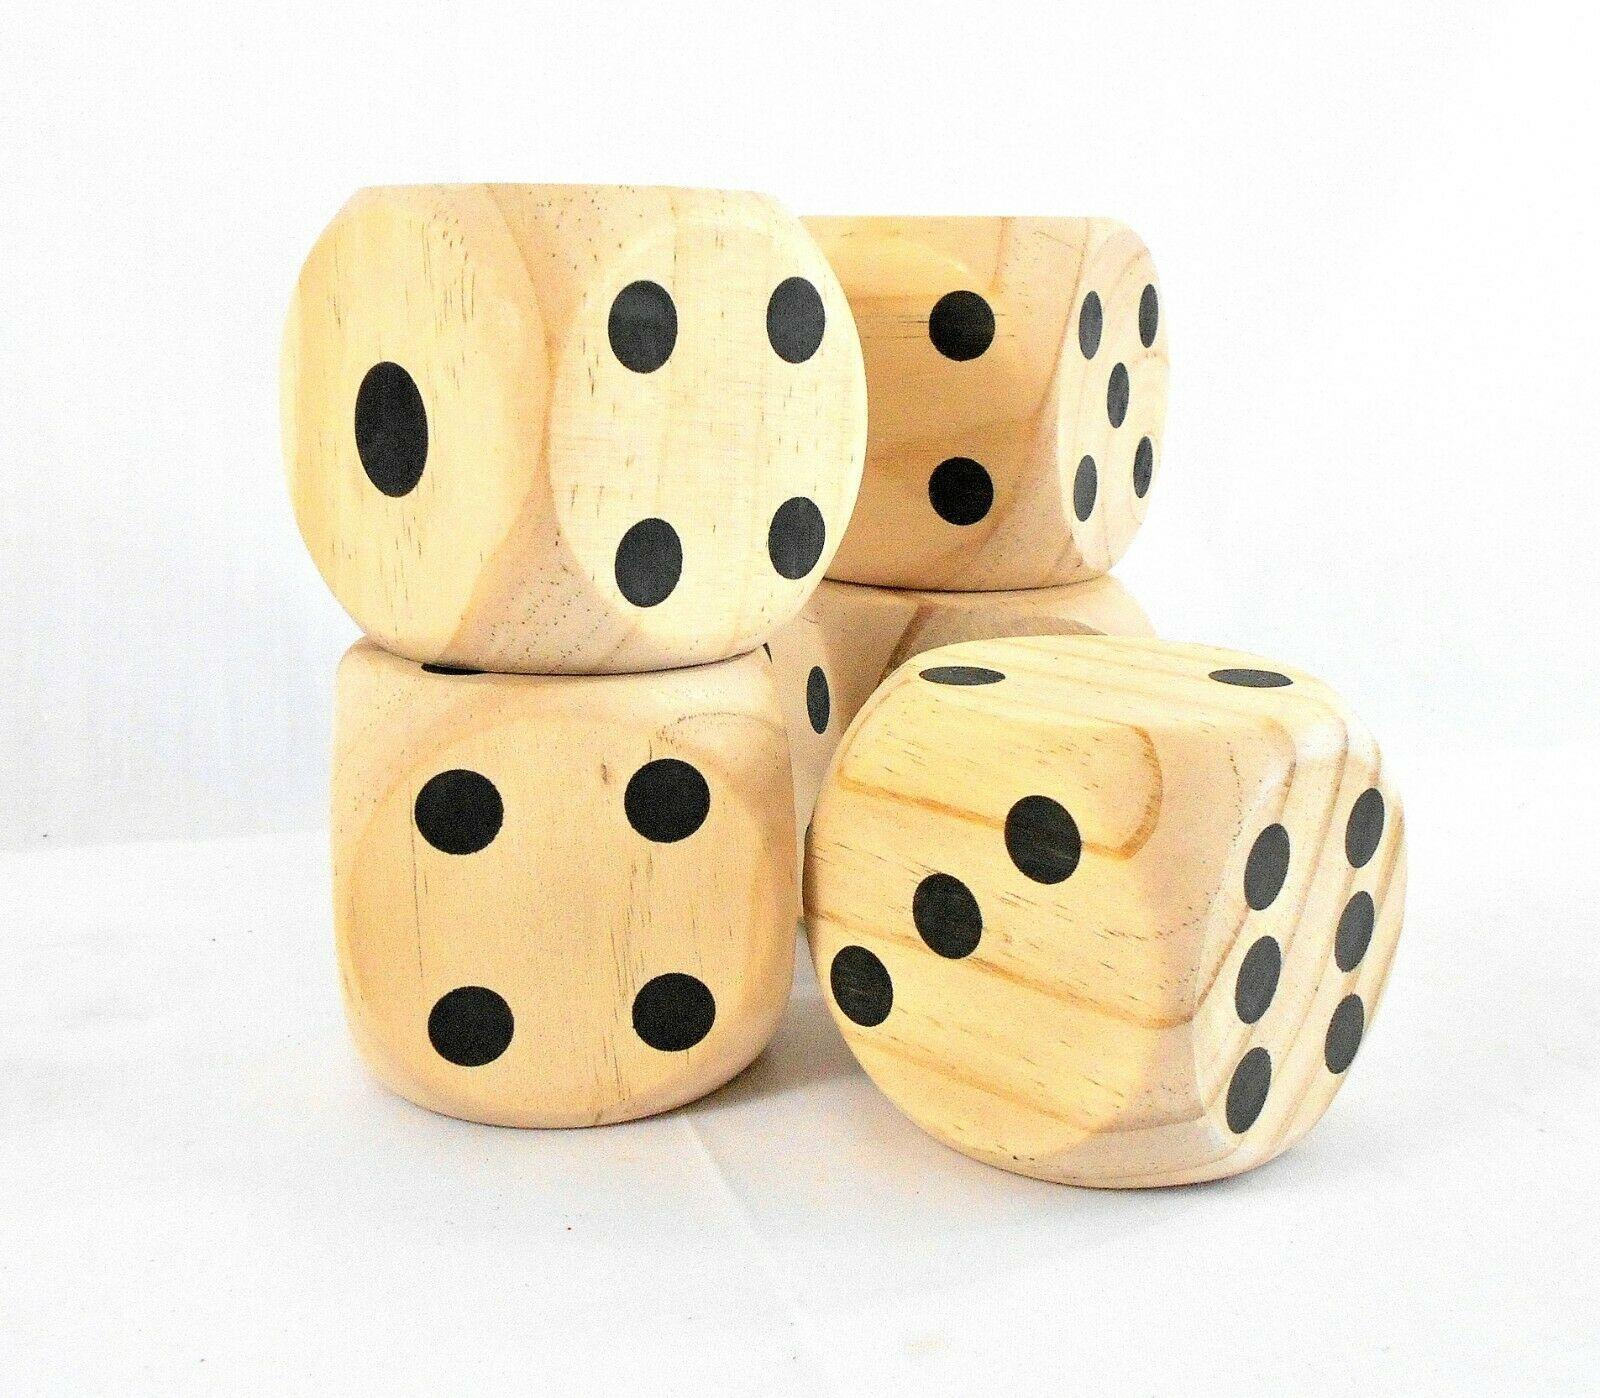 Jumbo Wooden Dice Game – Set of 5